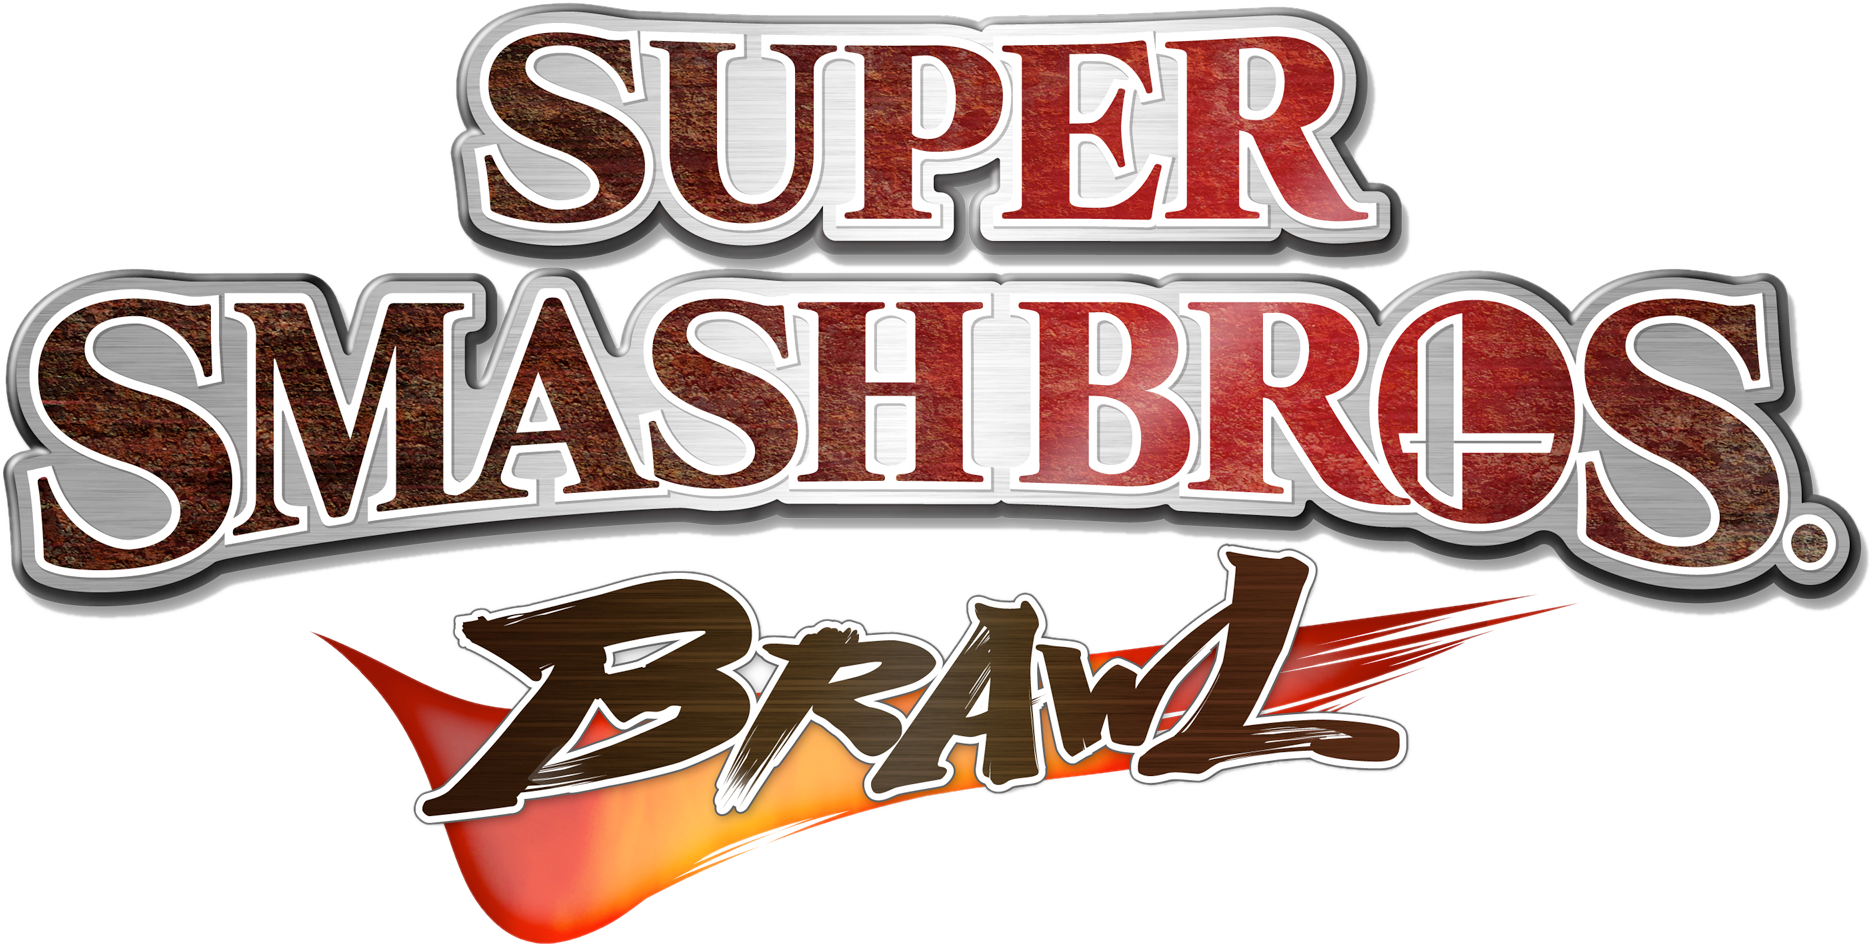 Super Smash Bros Brawl Logopedia Fandom